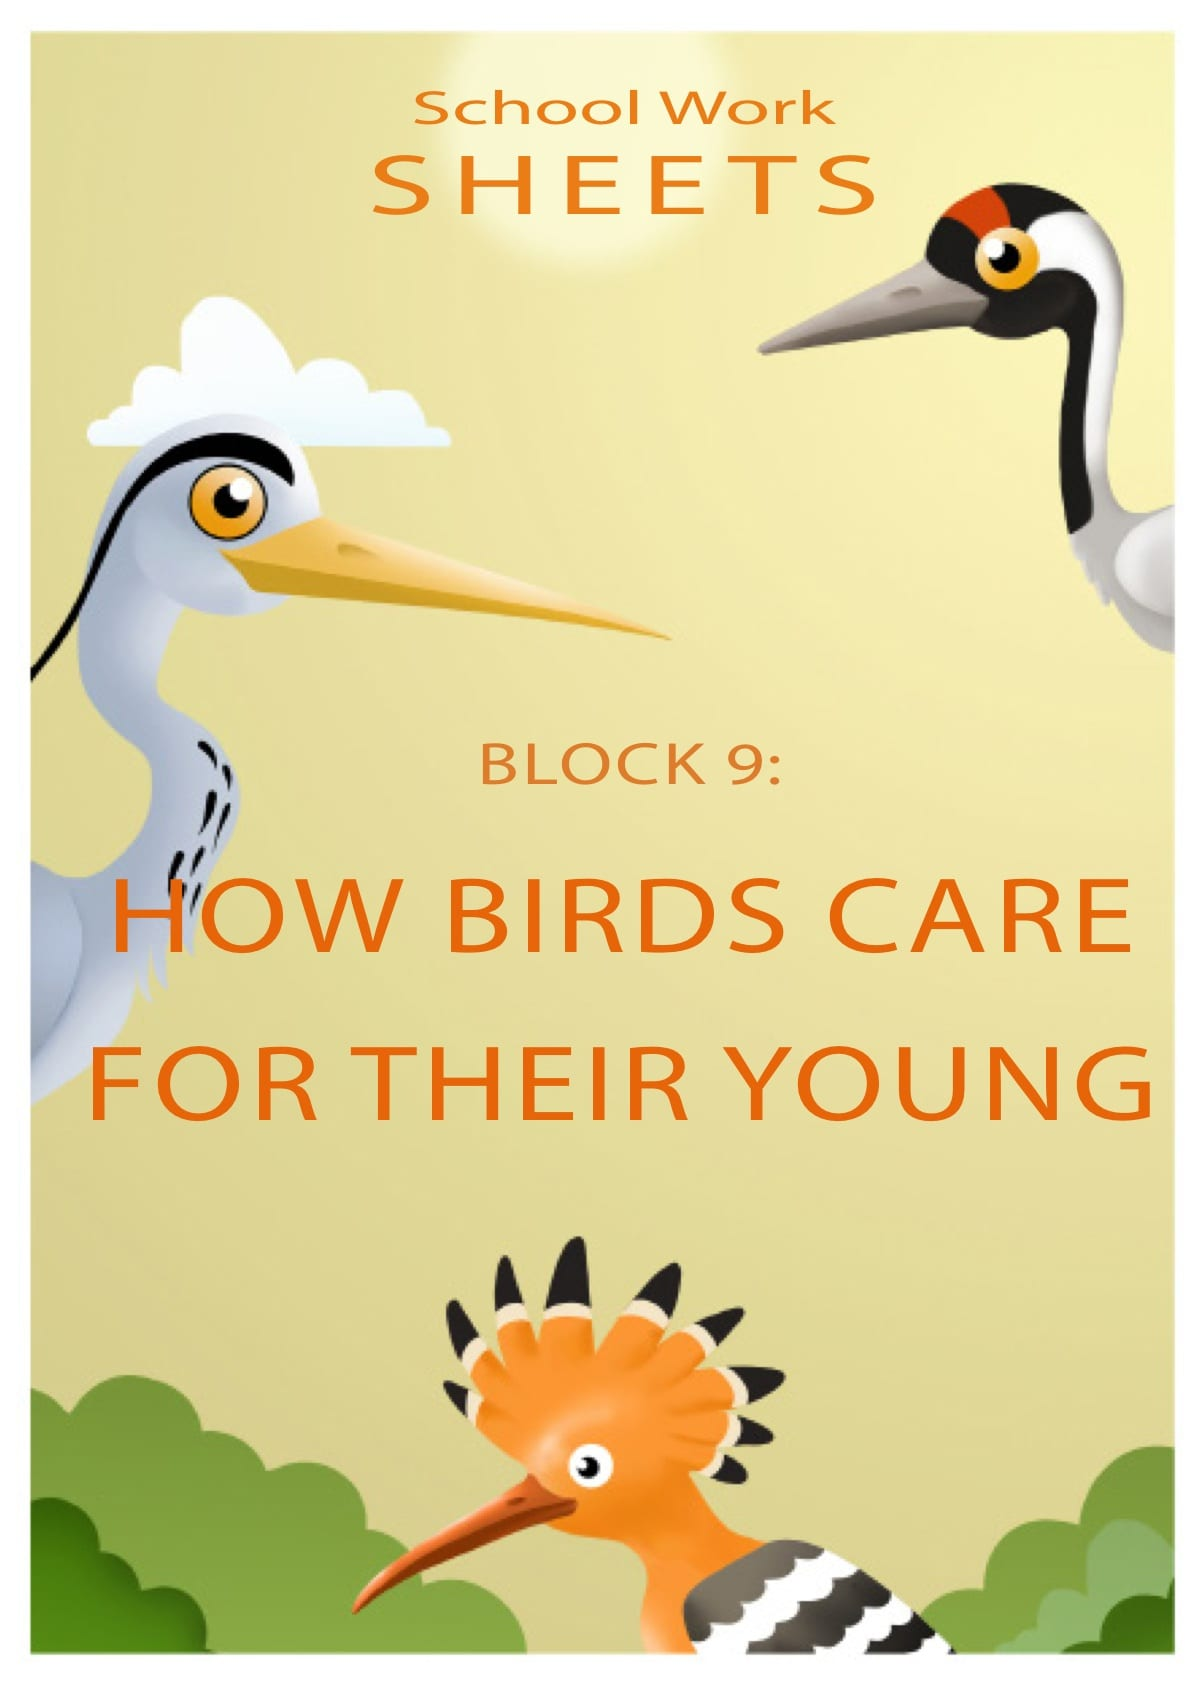 How birds care for their young